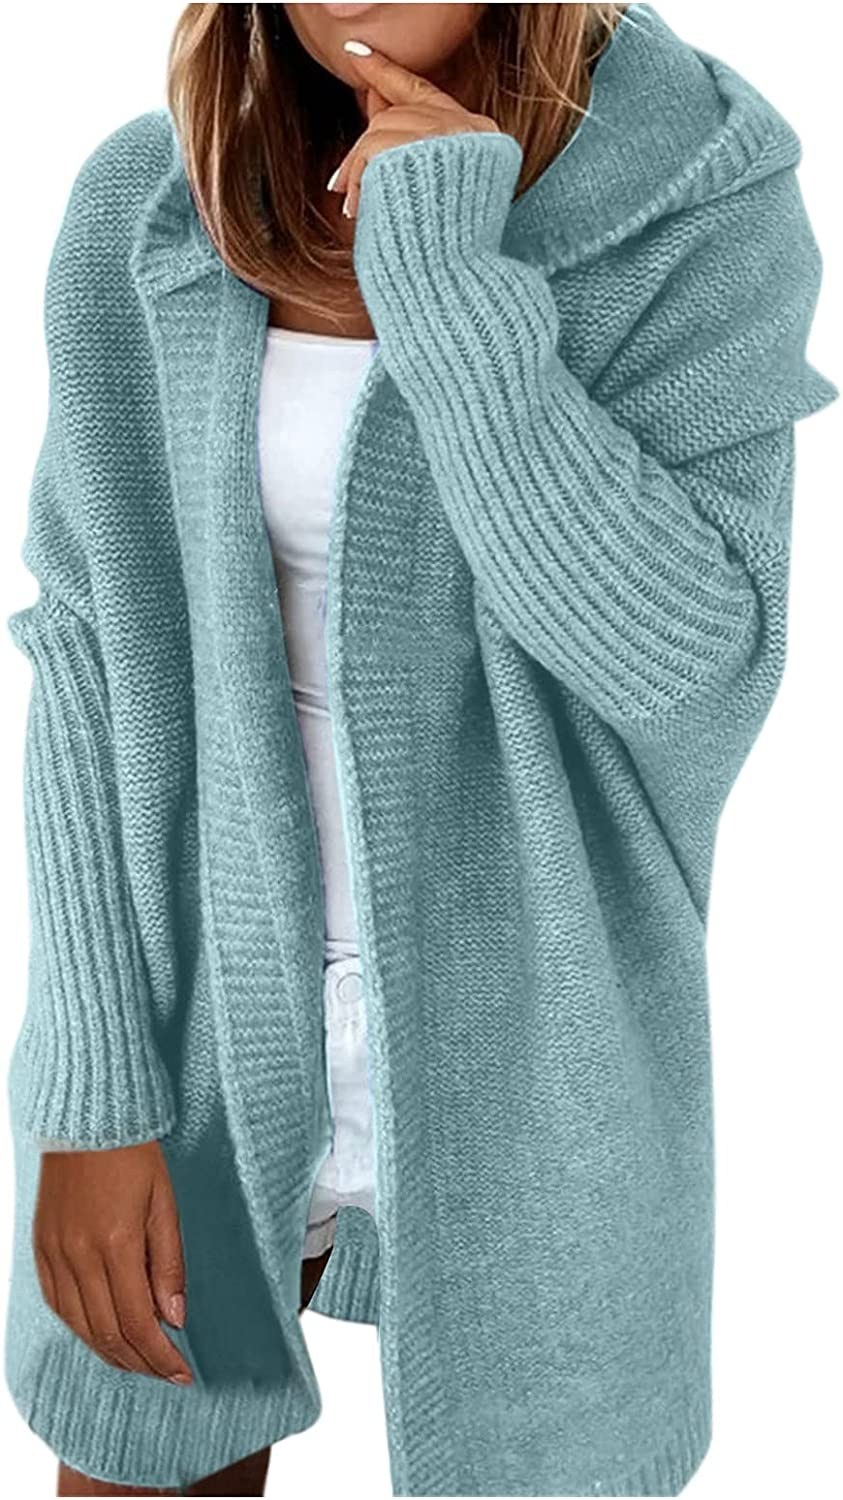 FORUU Cardigan Sweaters for Women 2021,Hooded Cardigans Solid Open Front Cardigans Stitch Batwing Sweater Knitted Coat